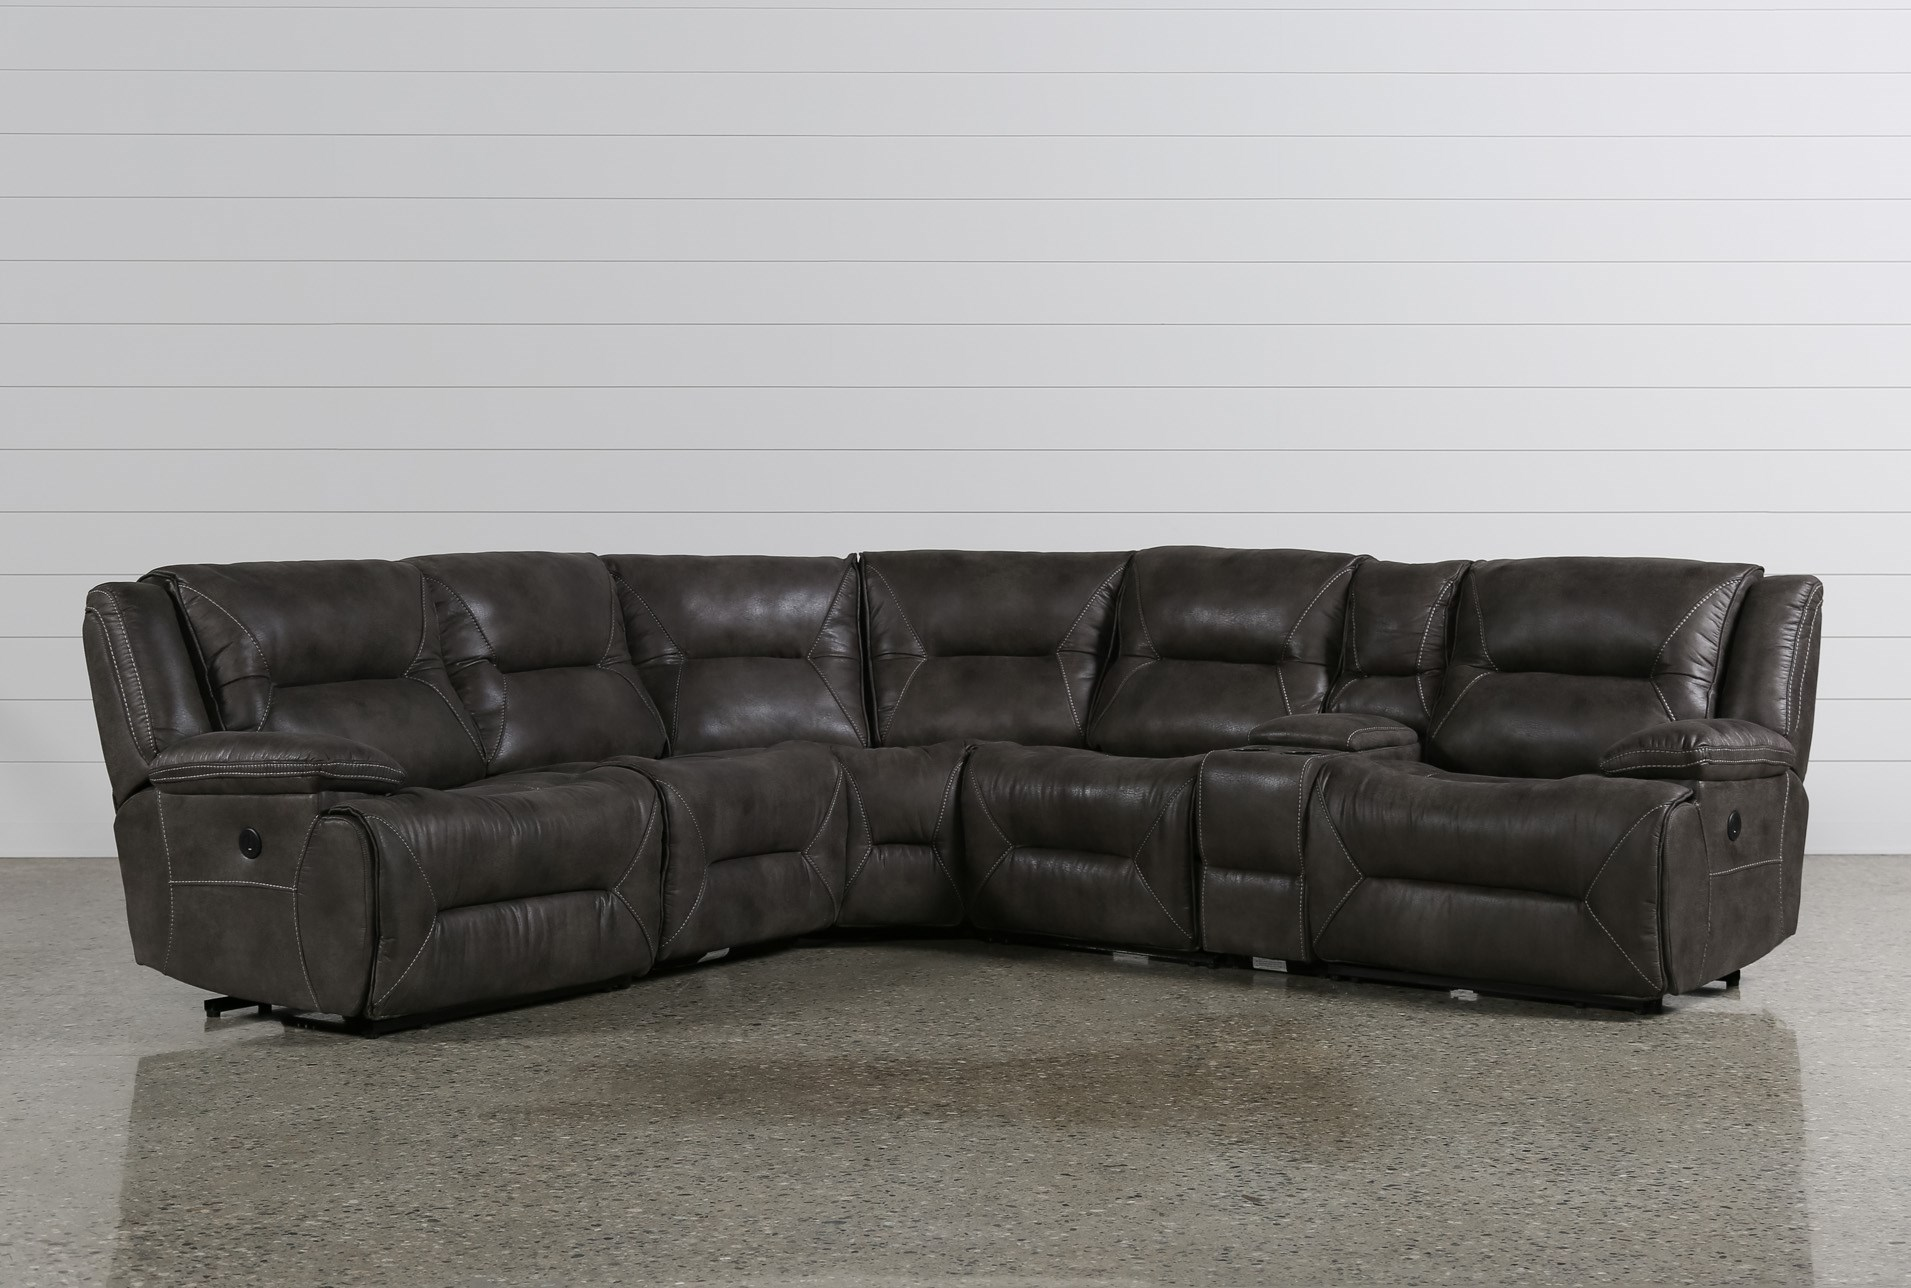 recliner coffee classy sofa also tufted rest luxurious leather black arm color reclining and table pin in with chaise sectional